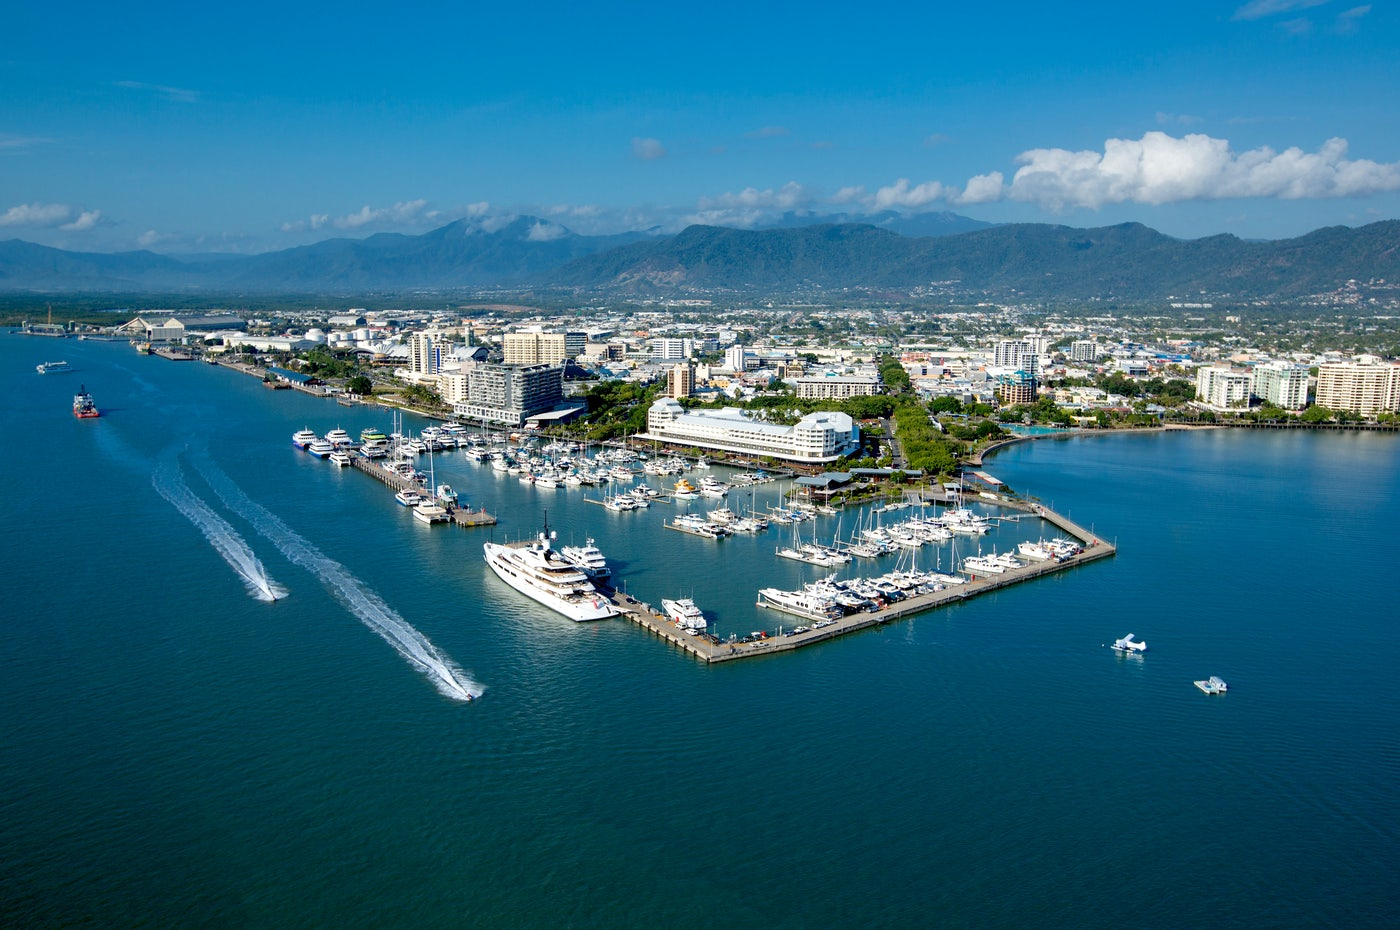 View of the Cairns Boat Harbour